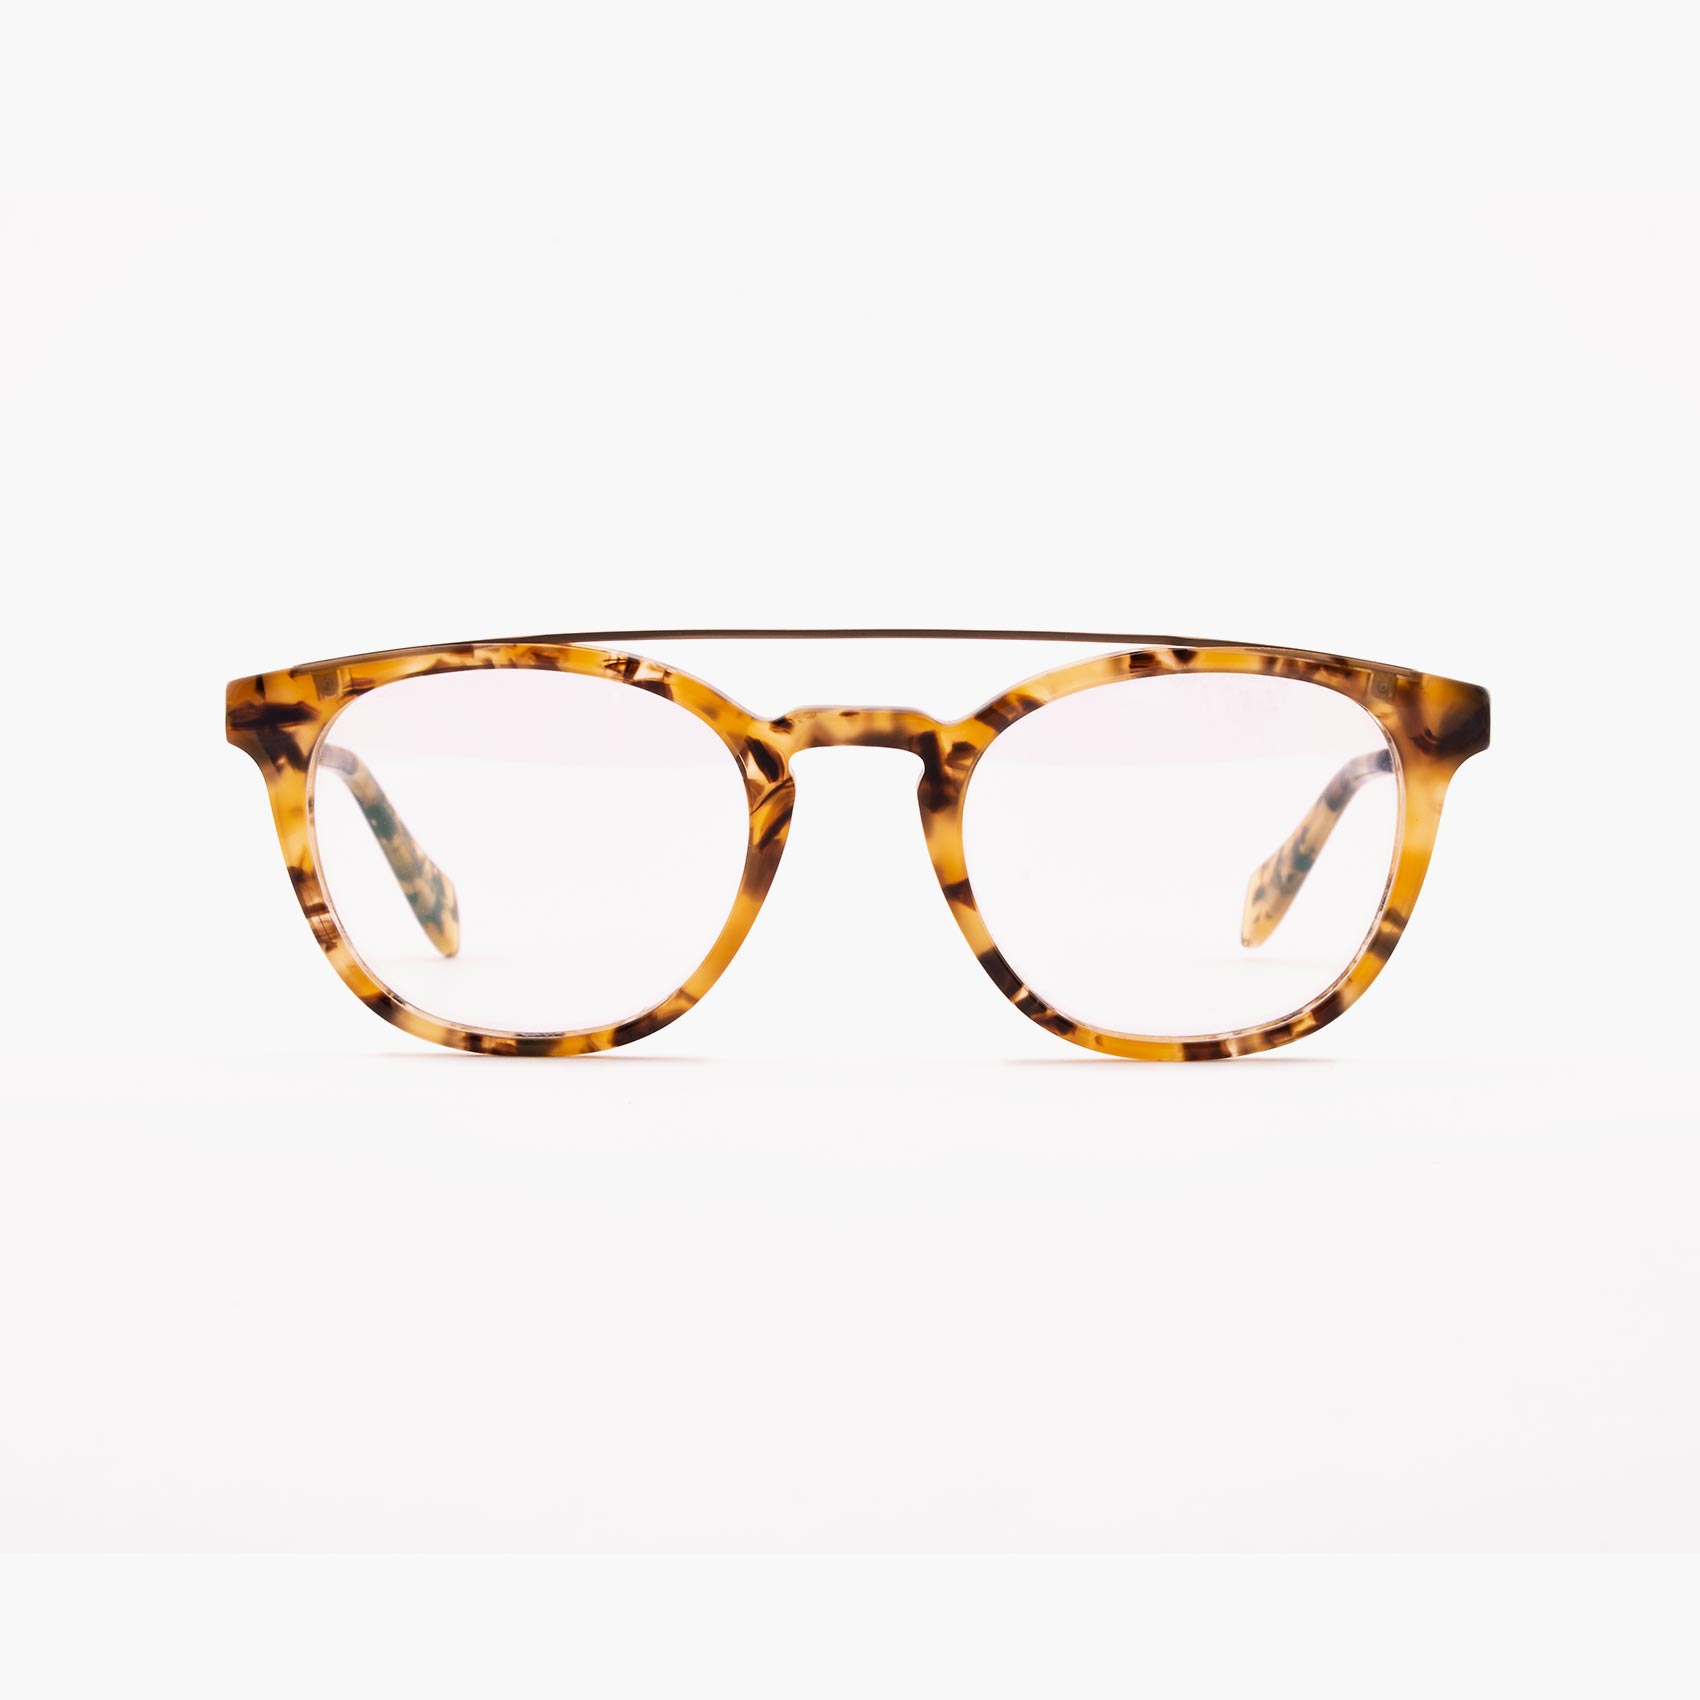 Proud eyewear Hilary C3 F gafas de acetato puente doble